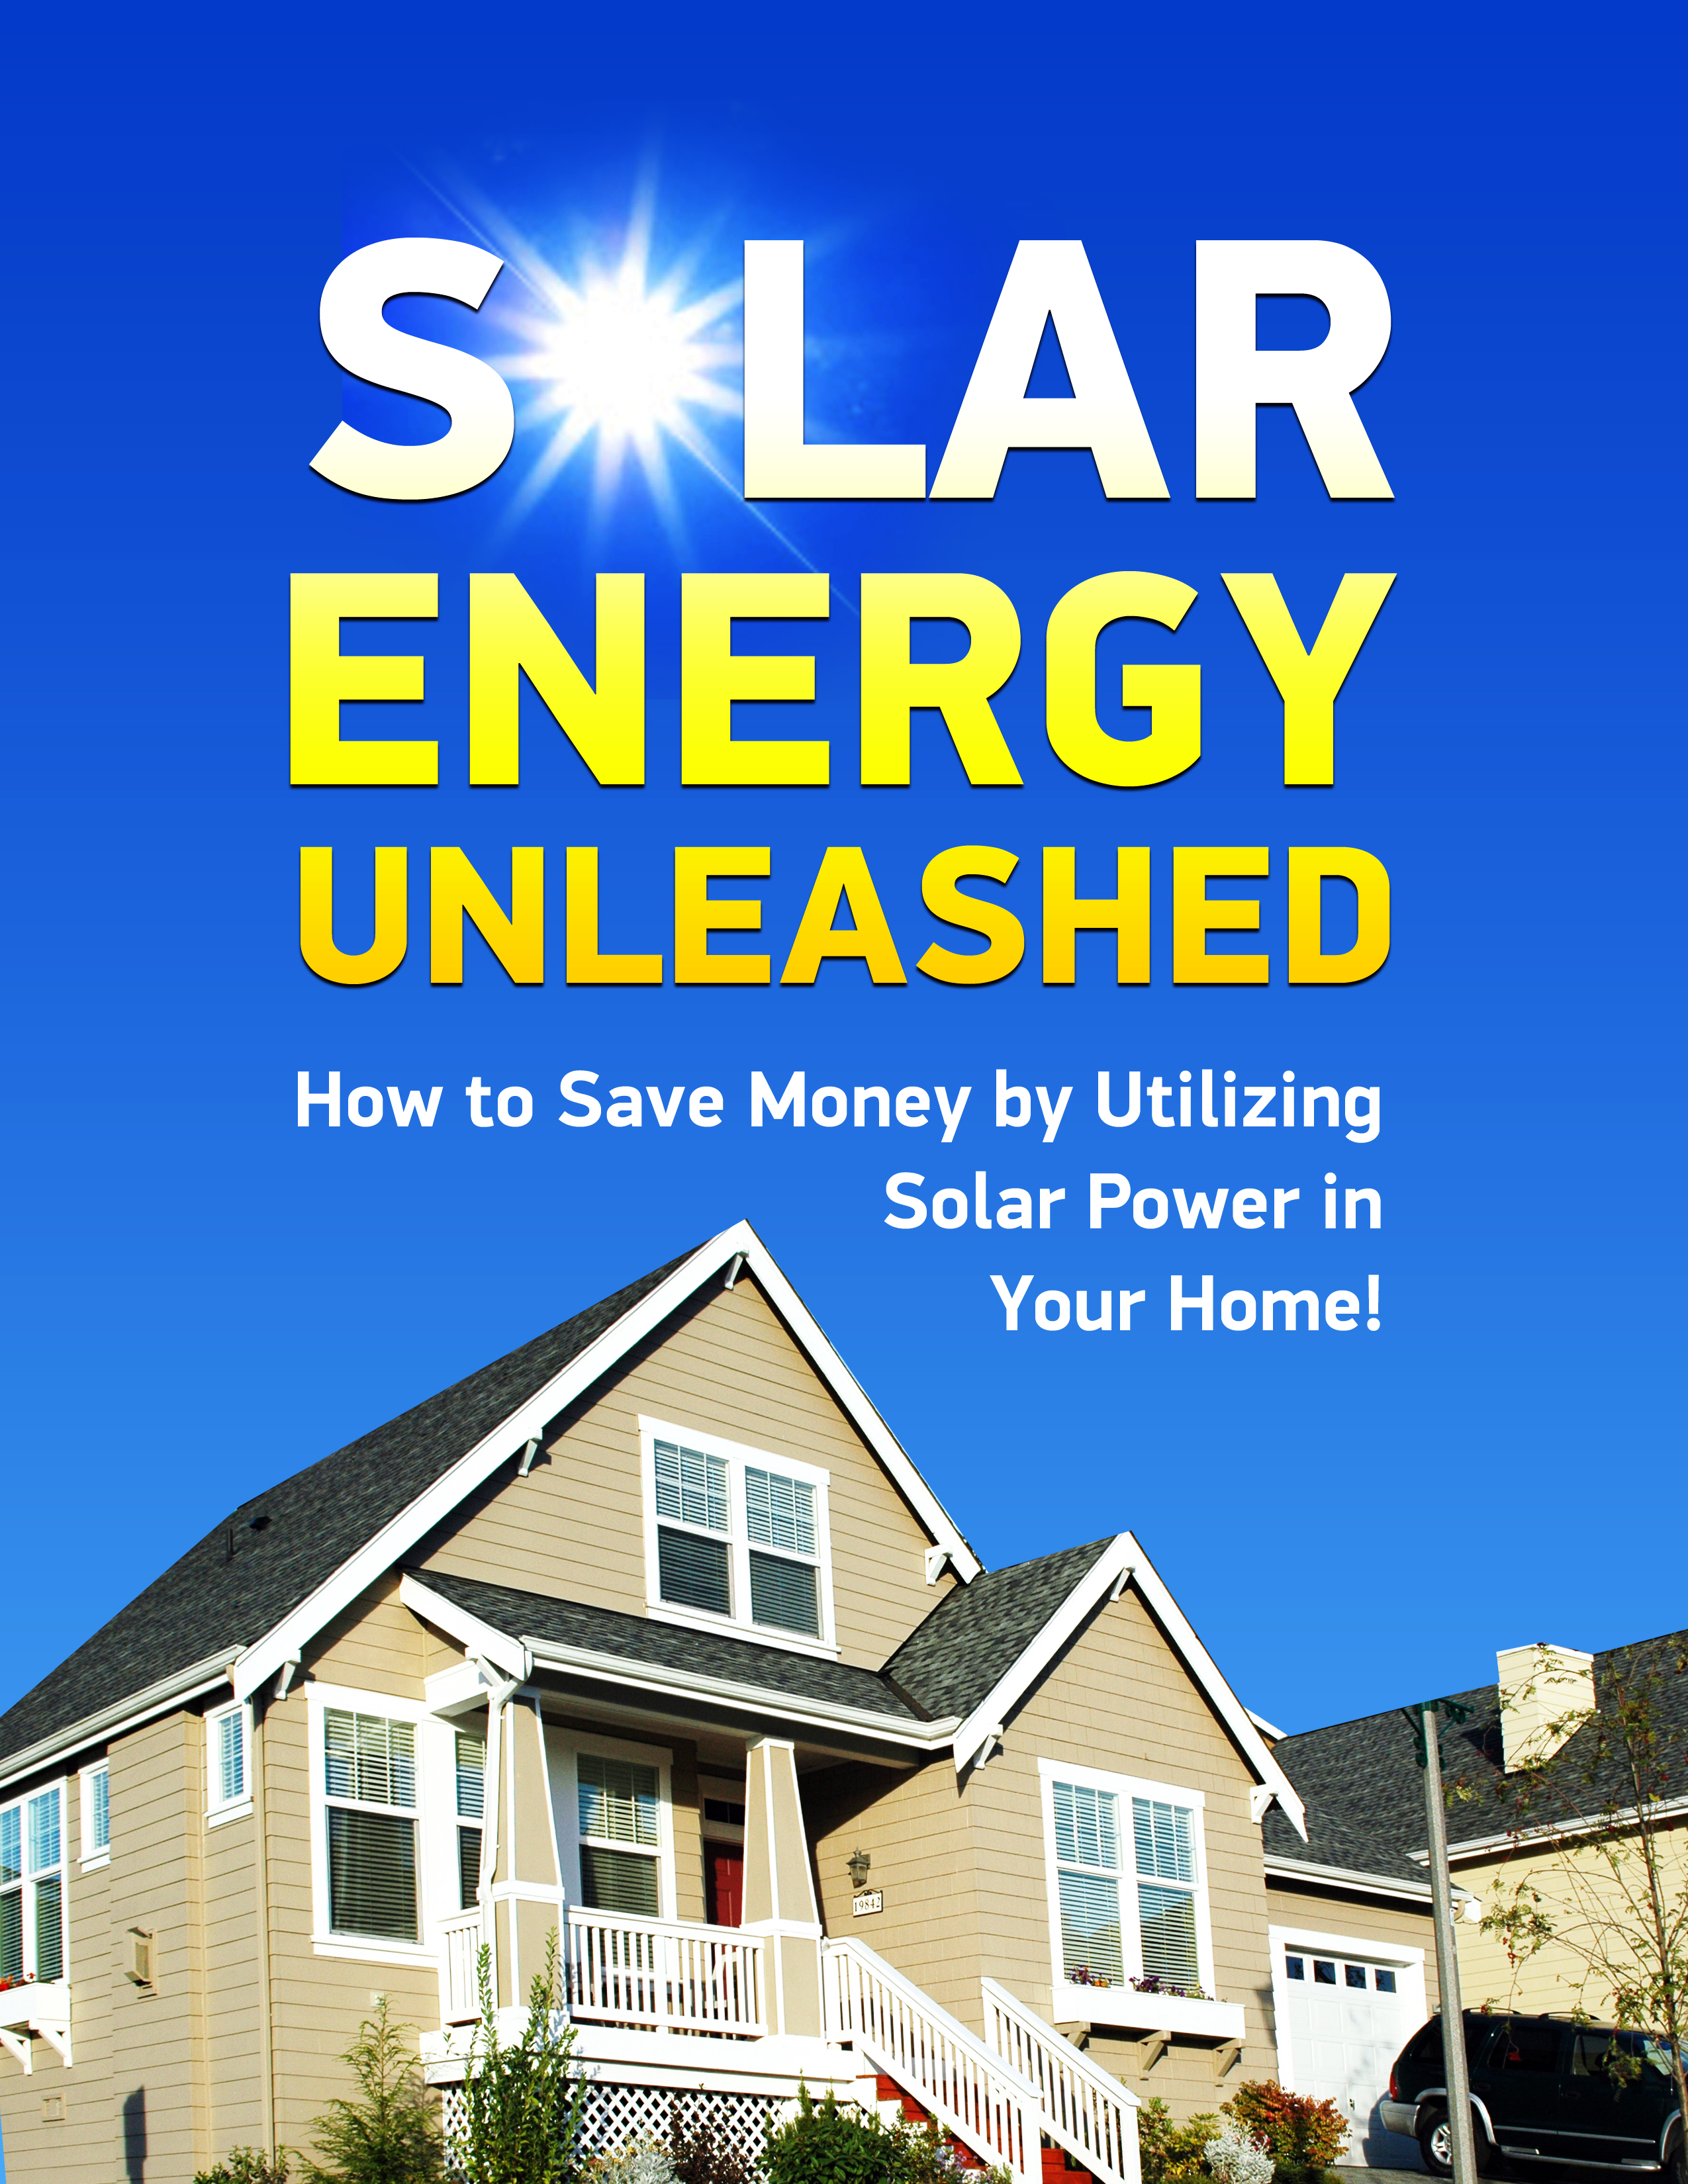 How_to_save_money_by_utilizing_solar_power_in_your_home.jpg